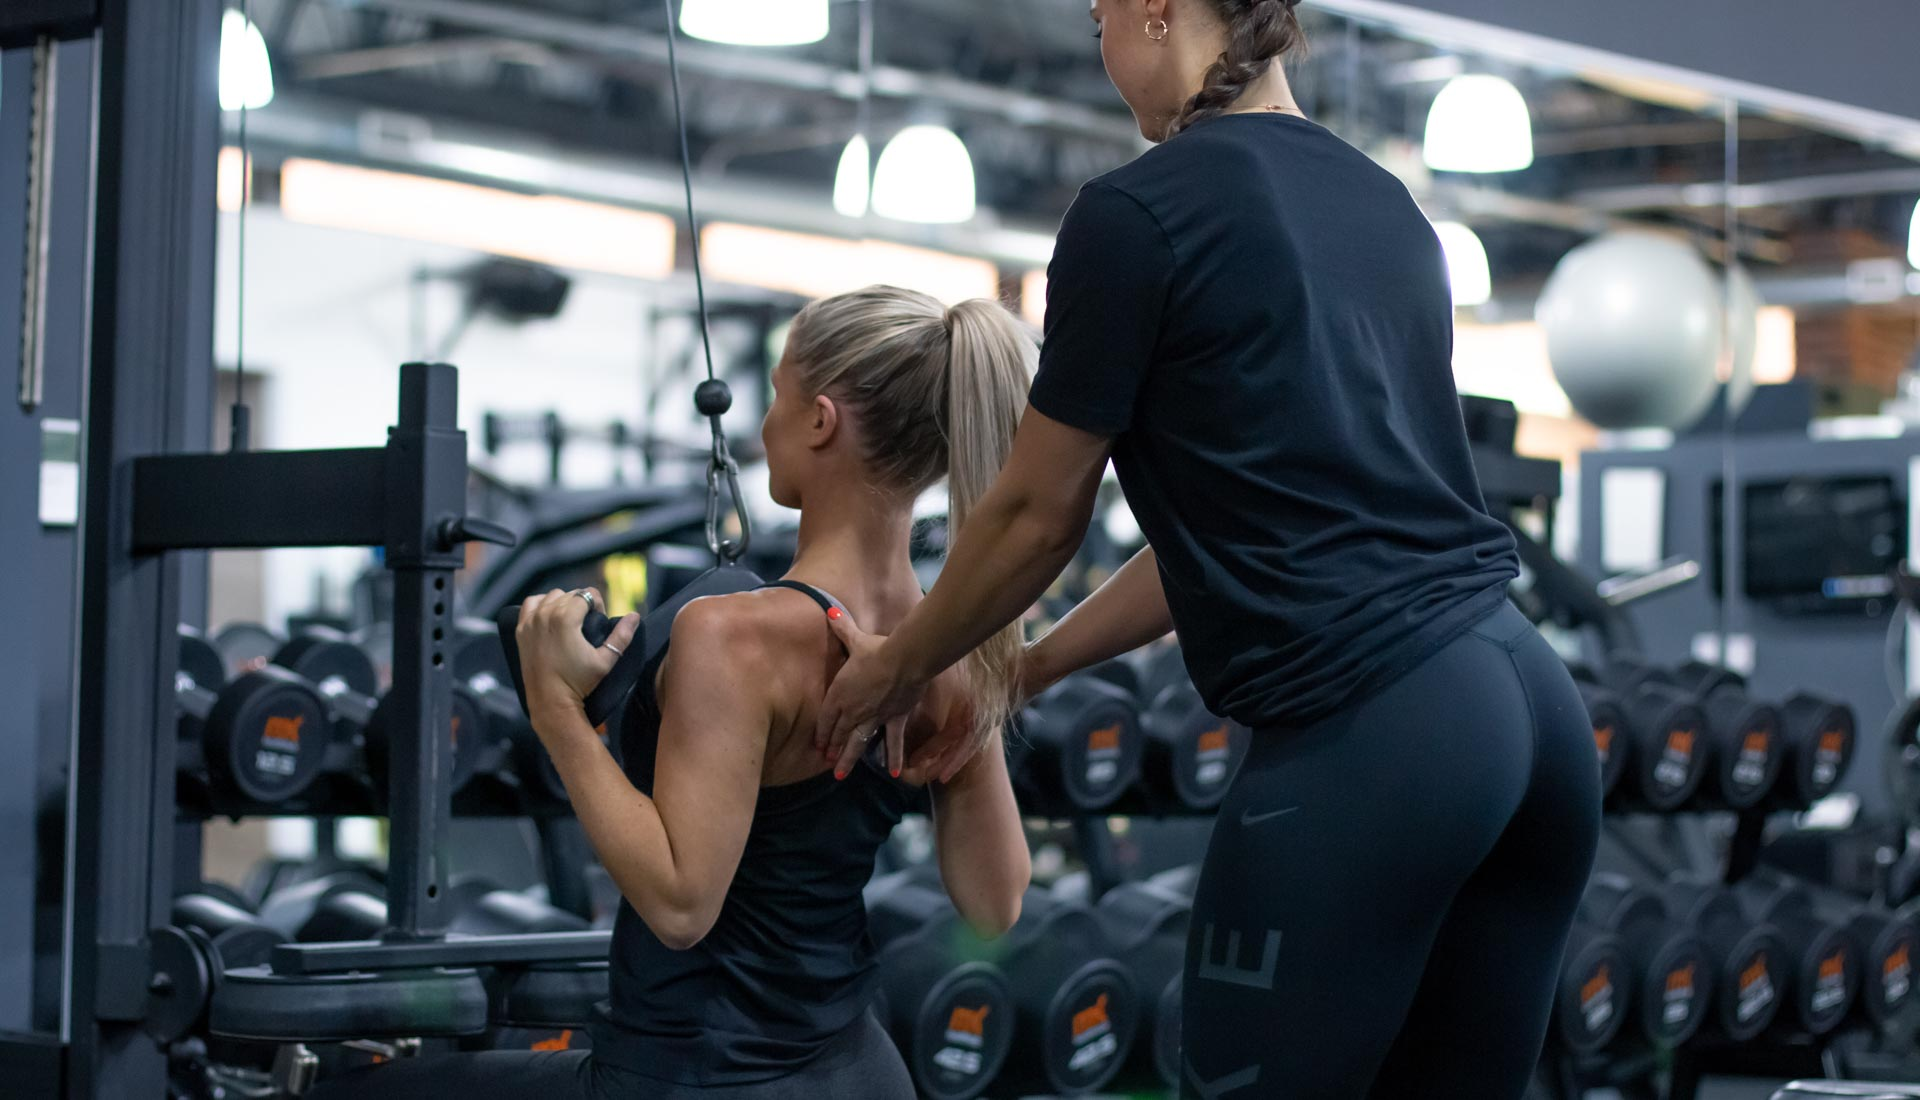 Personal training gym session. Gym workout with a personal trainer. Fitness photography birmingham, fitness photographer uk